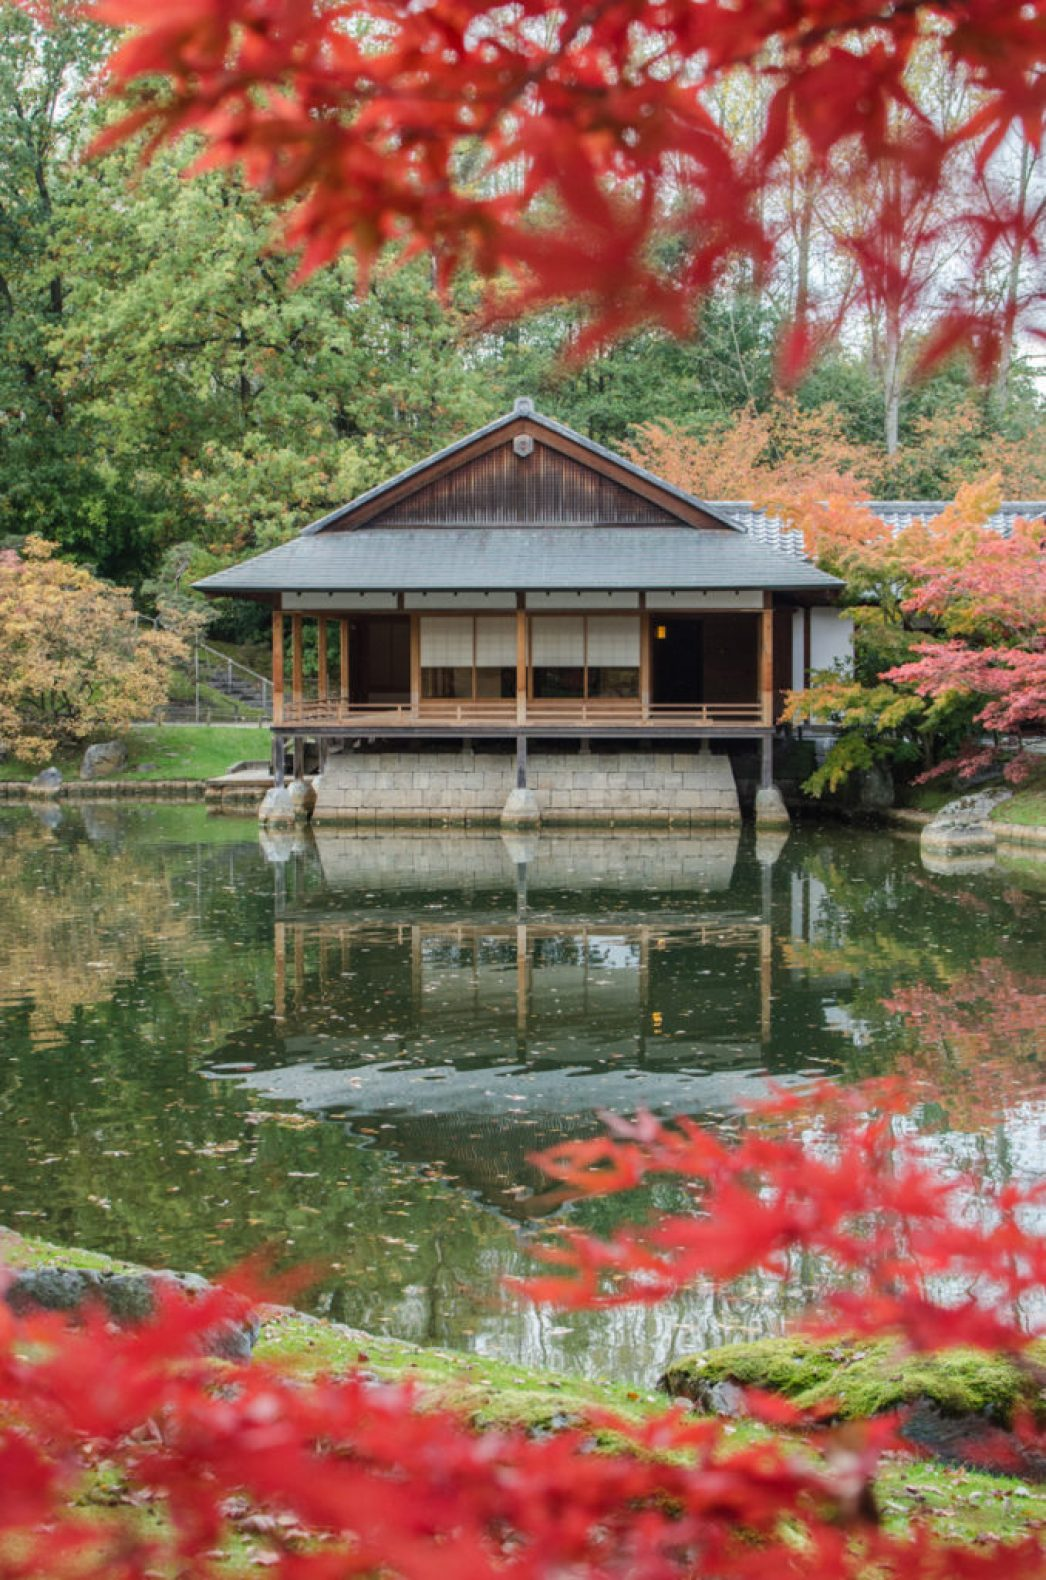 Do you know that Belgium hosts the largest Japanese garden in Europe? It is the Japanese garden of Hasselt, in the Flemish province of Limburg.